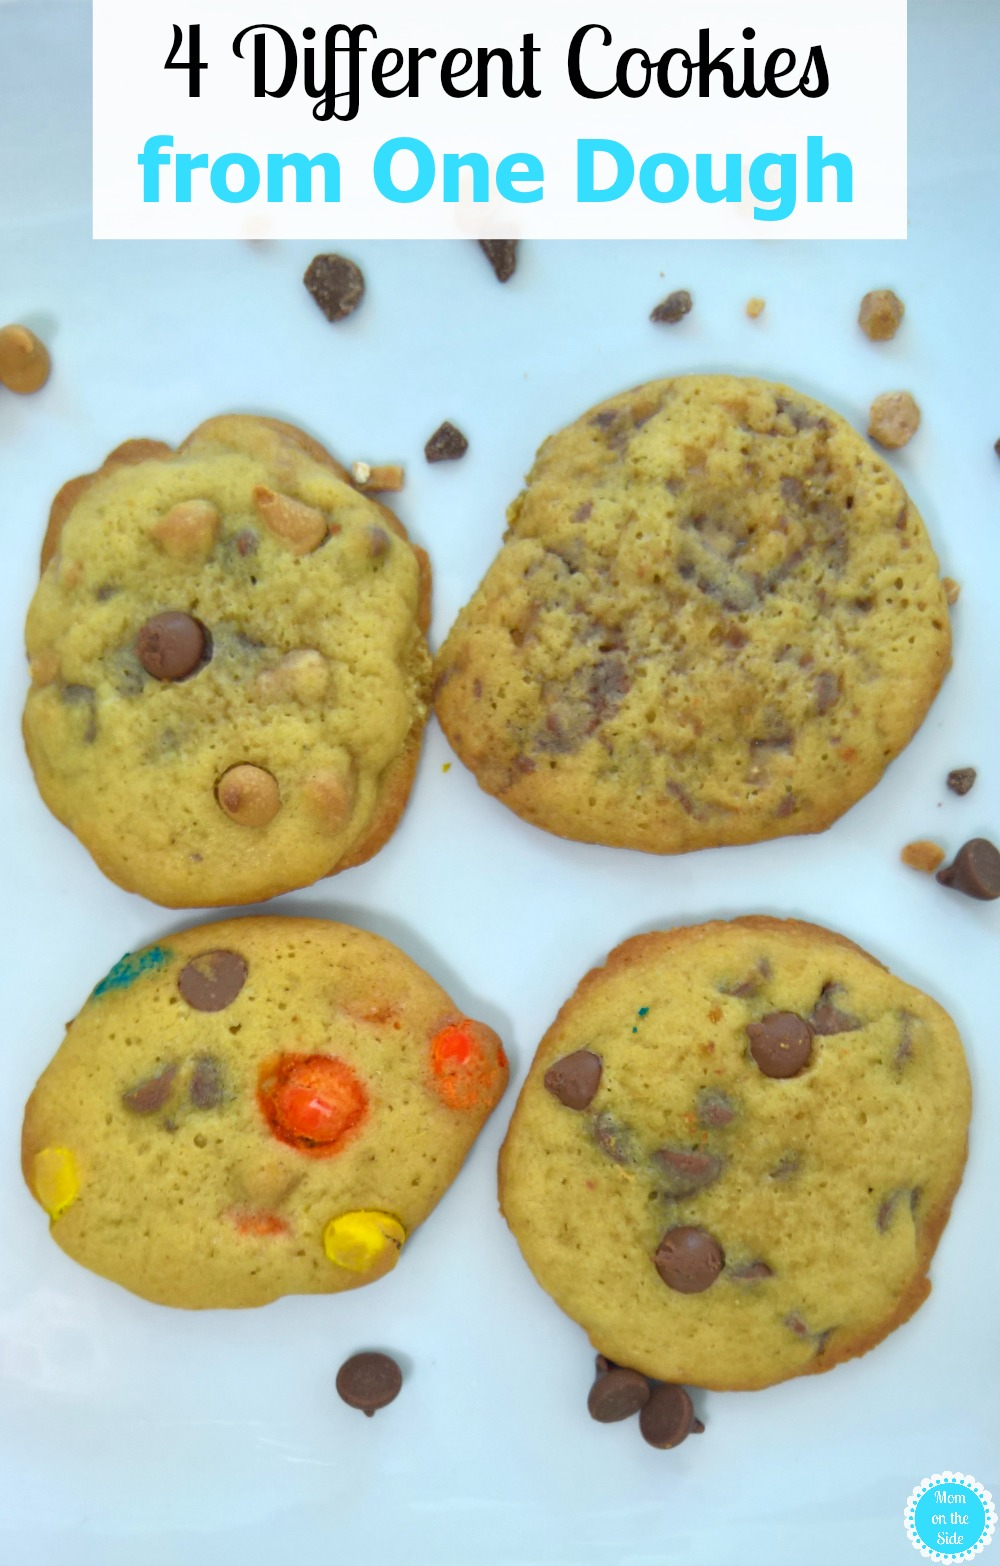 4 Different Cookies From One Dough